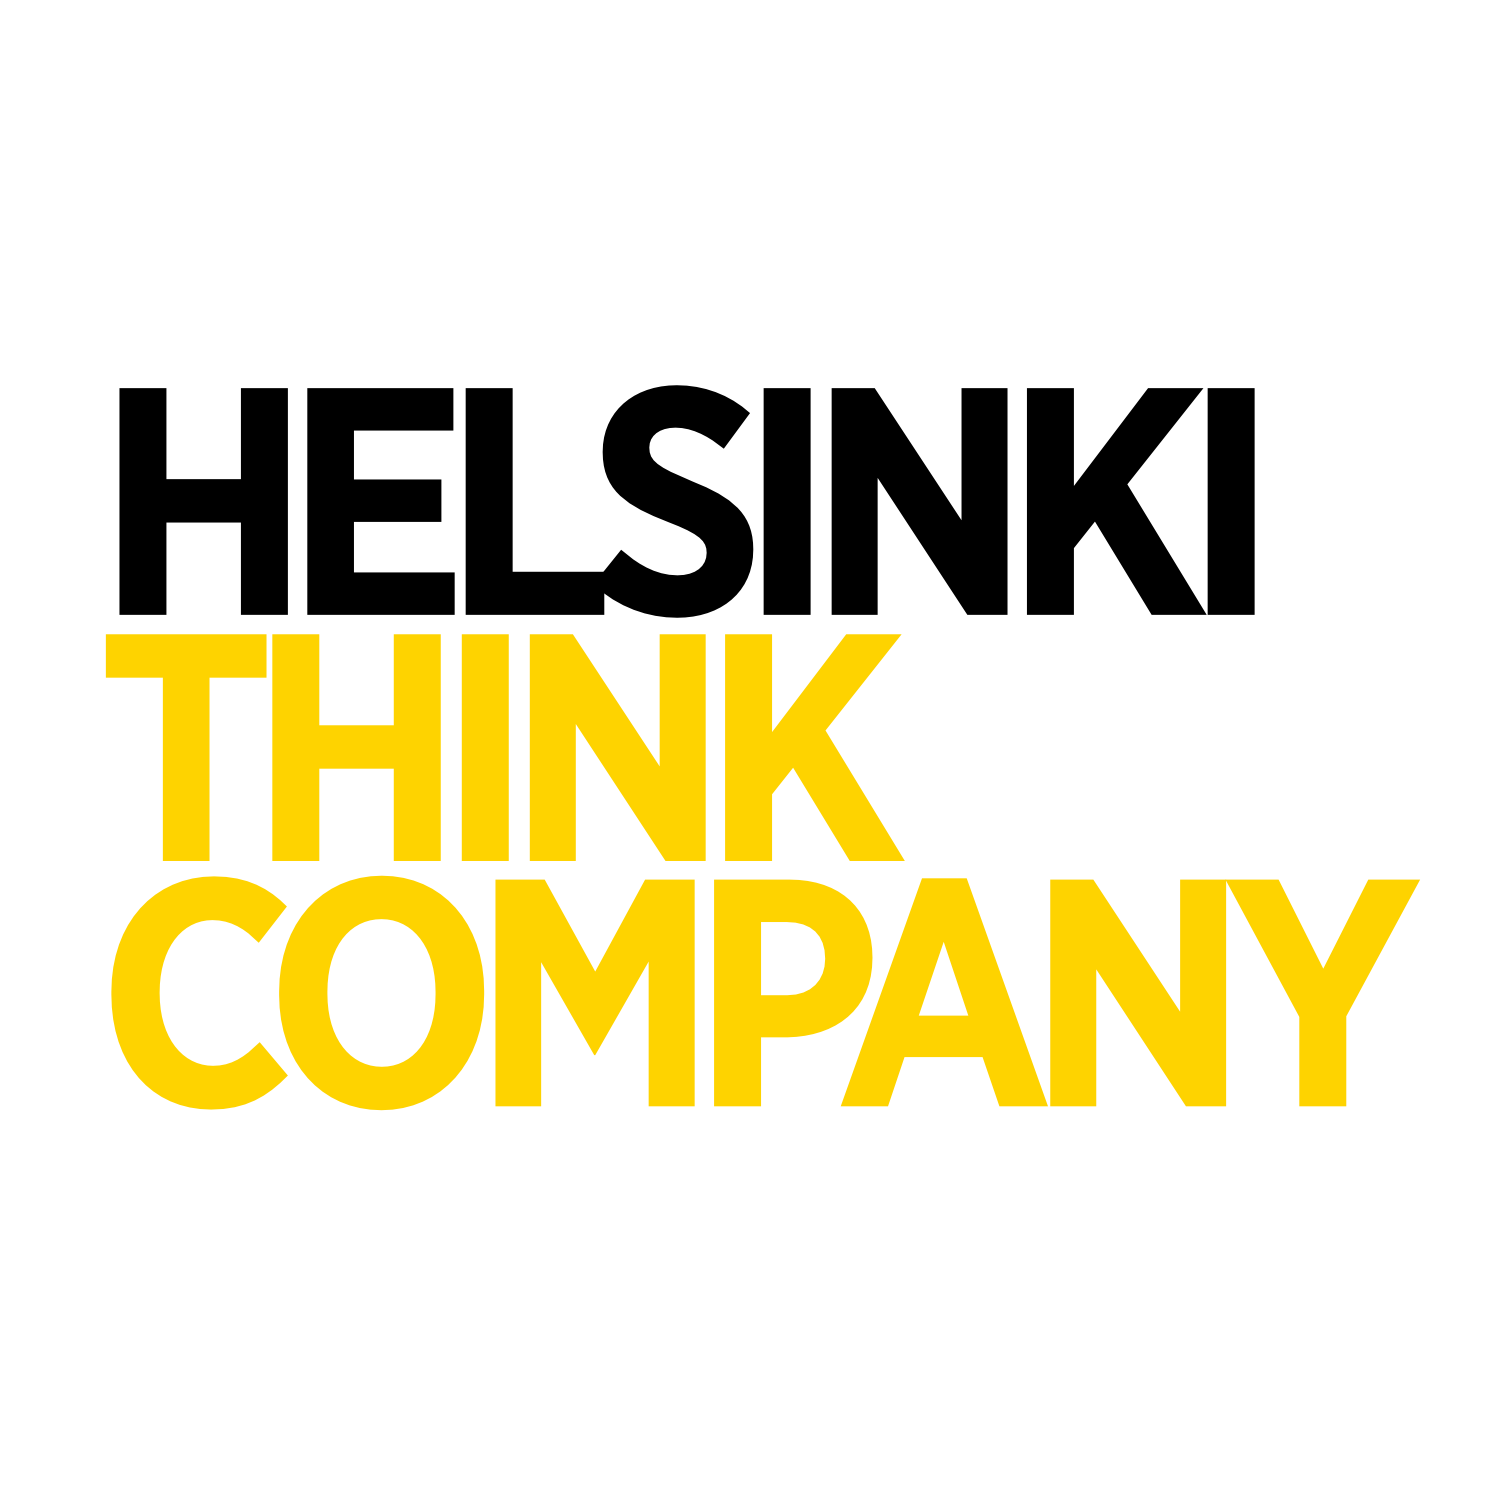 Helsinki Think Company - Center